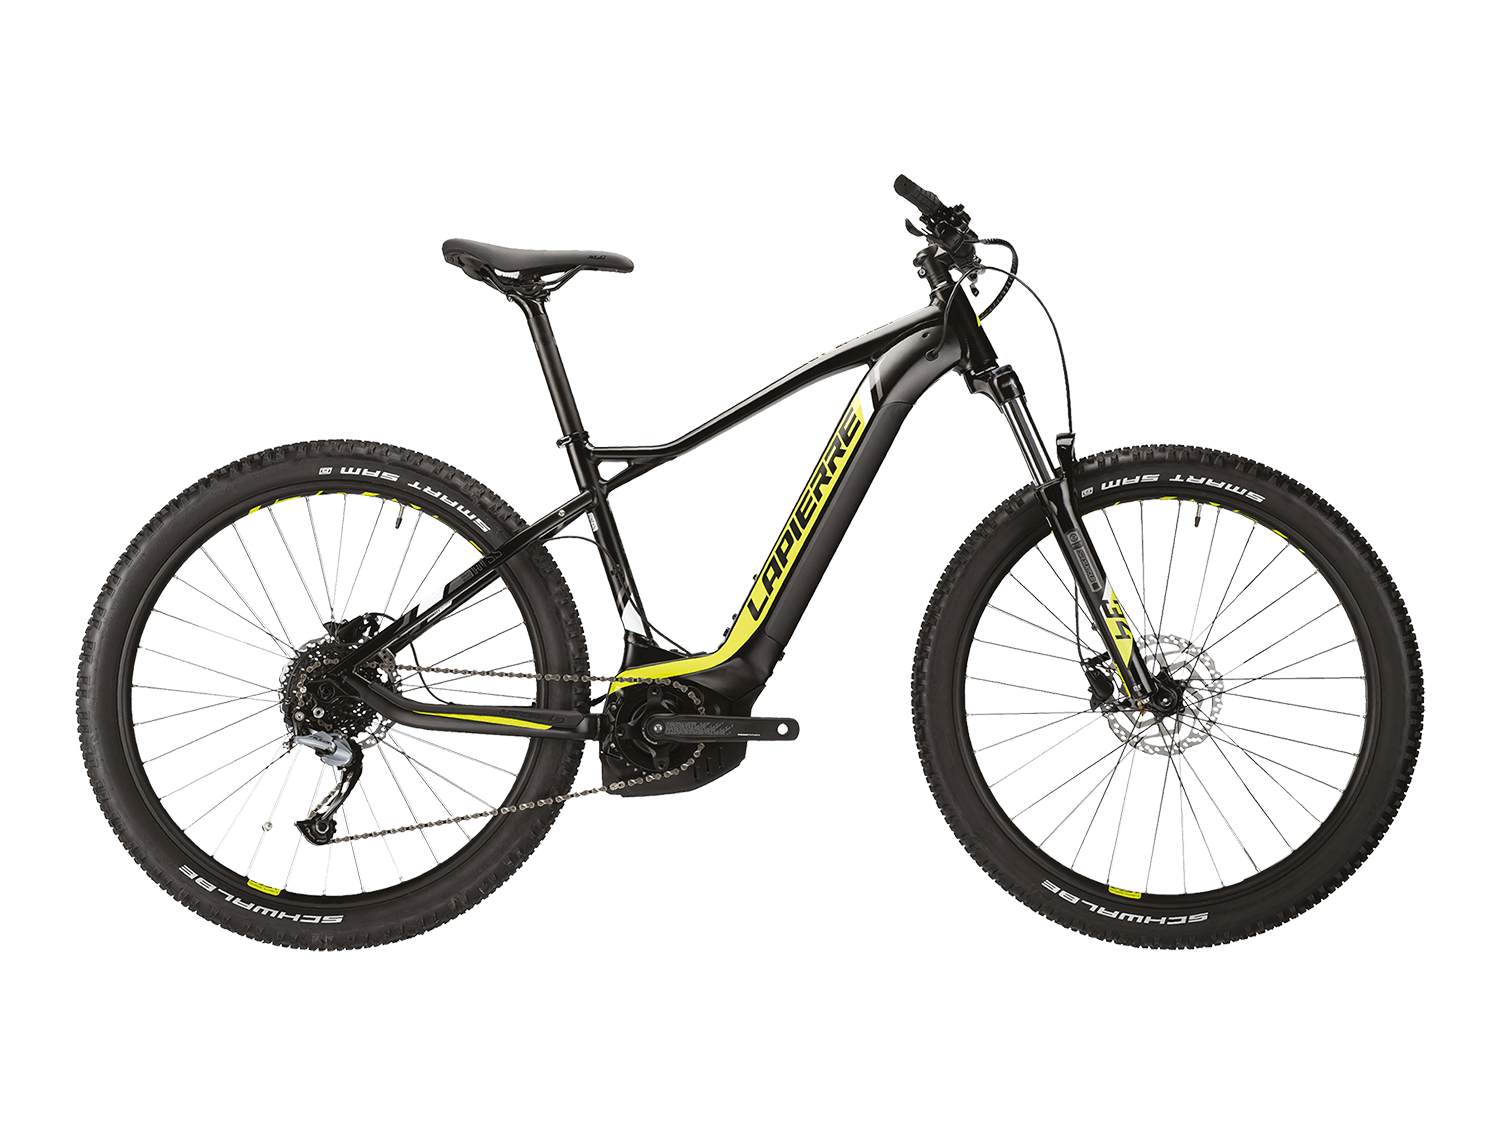 Lapierre Overvolt HT 5.5 2021 Electric Mountain Bike